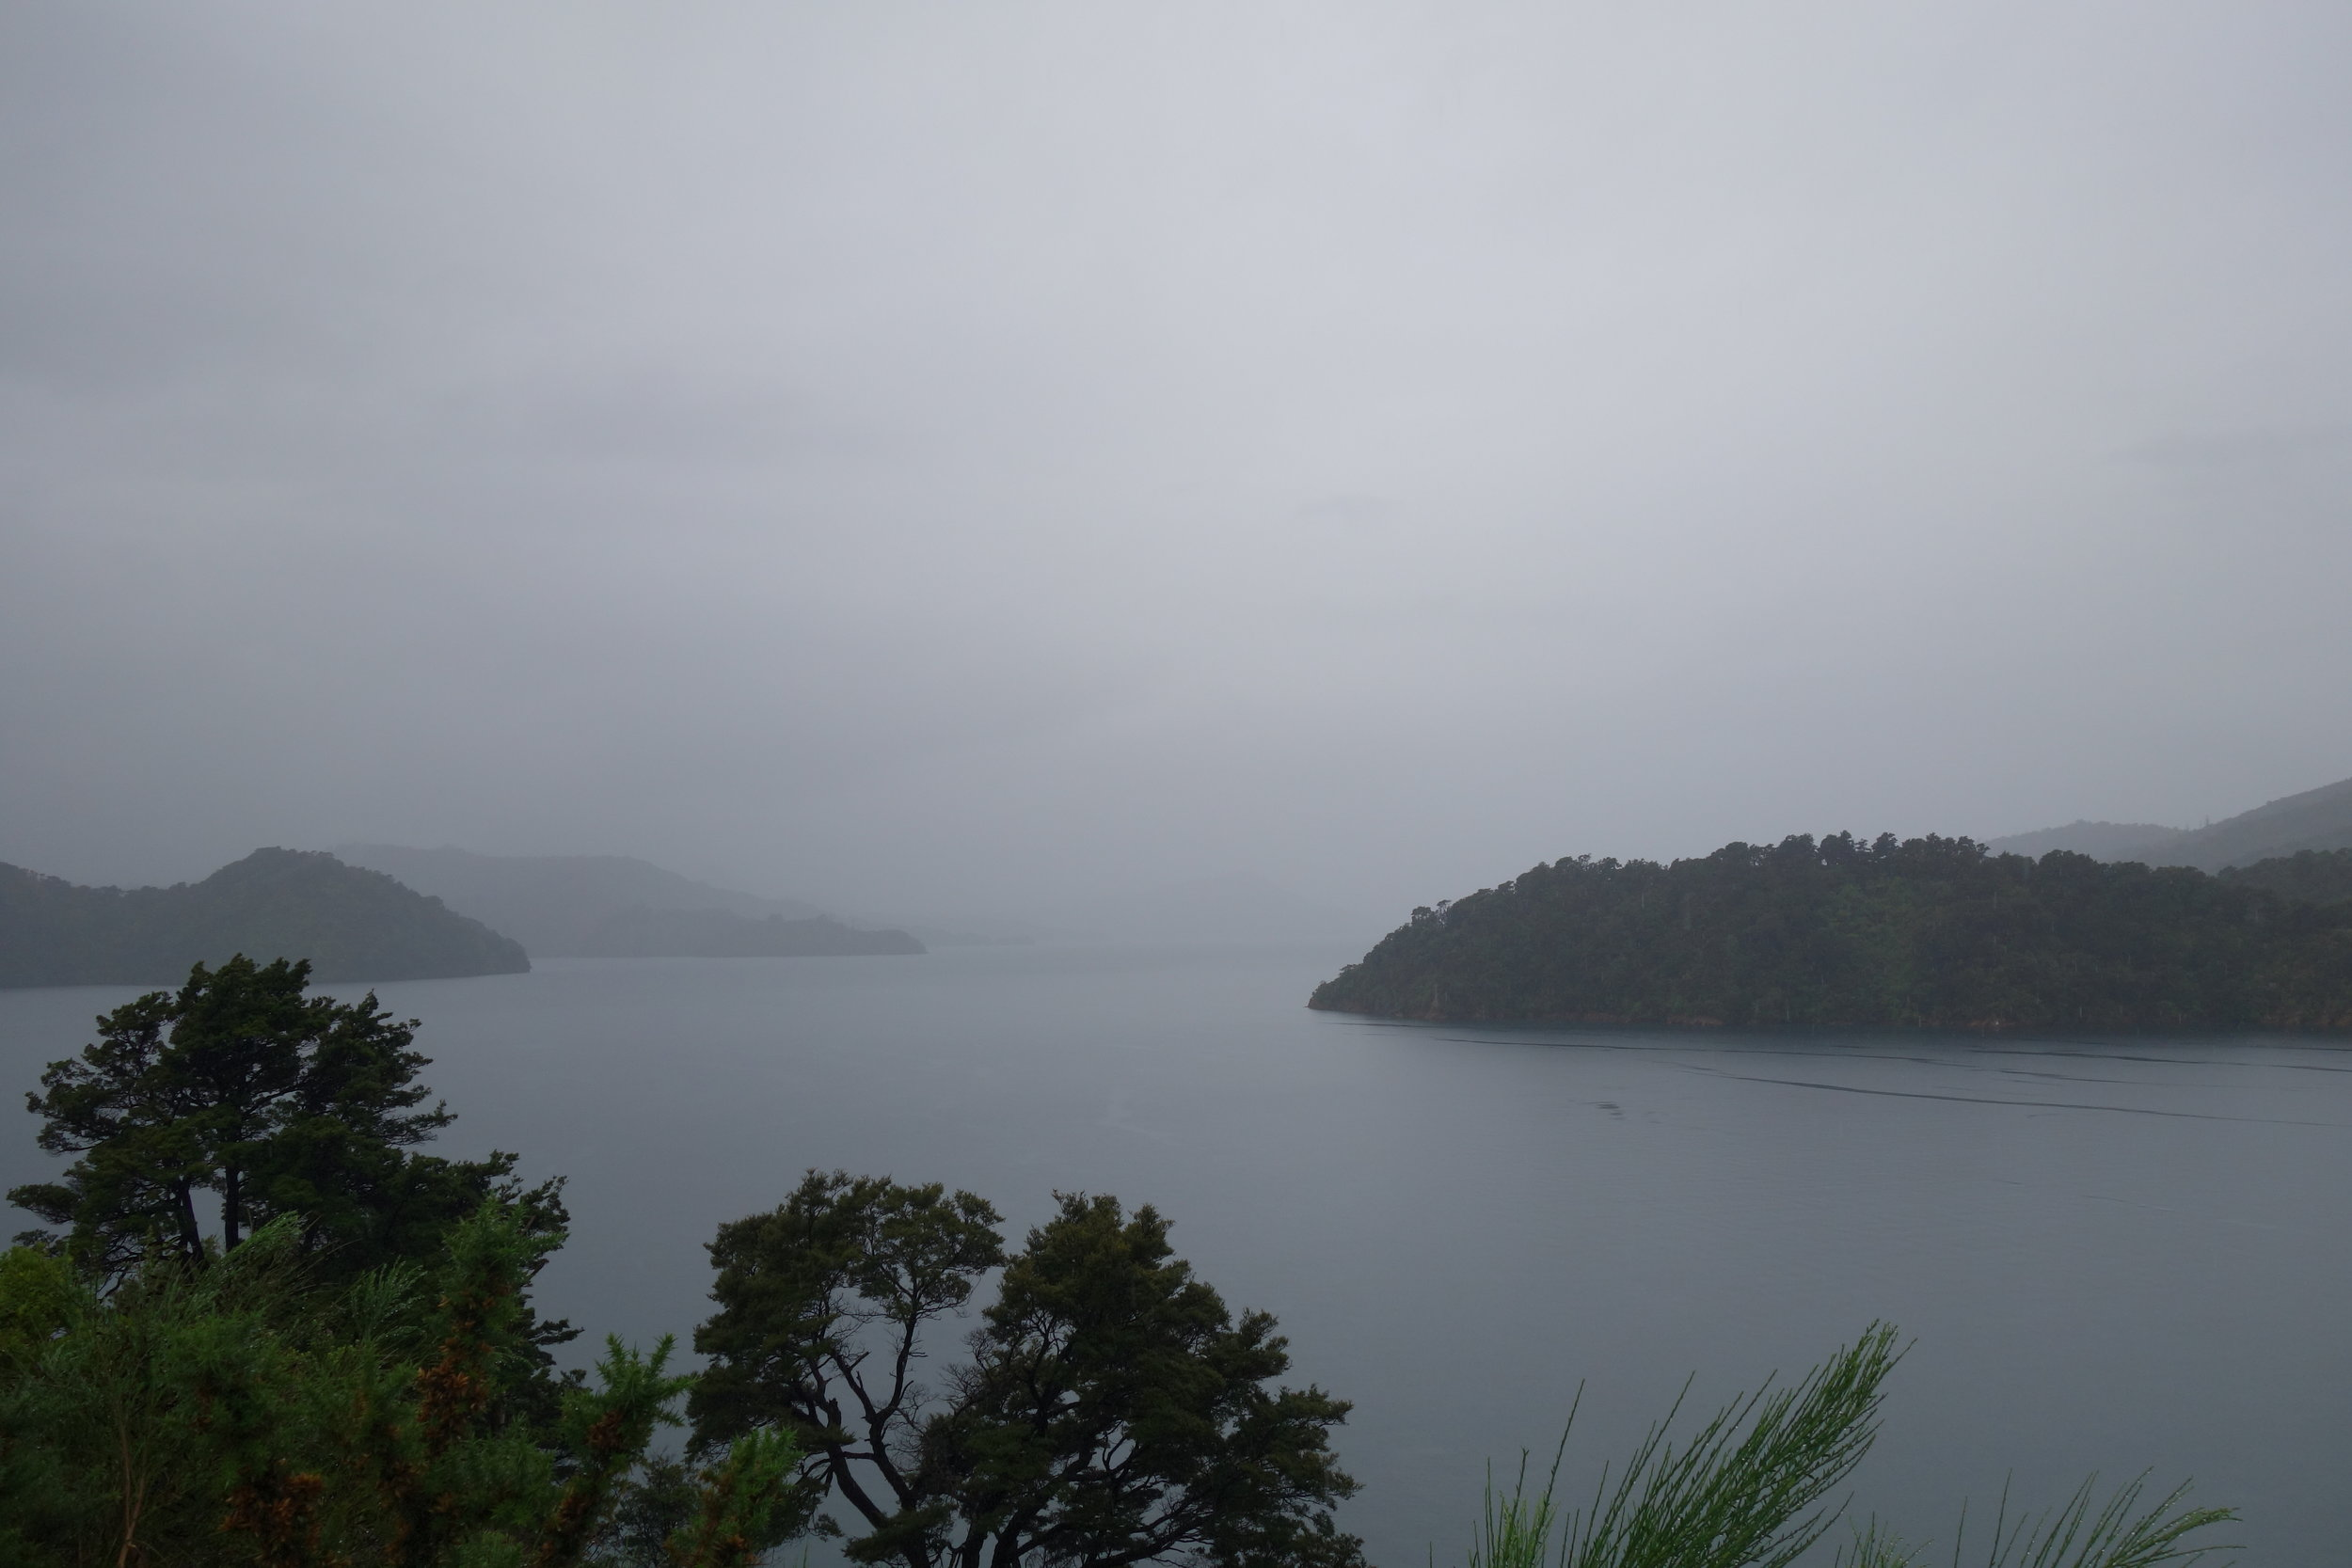 I've got all day so I take the scenic route along Queen charlotte Drive. Yes, it is indeed rain.